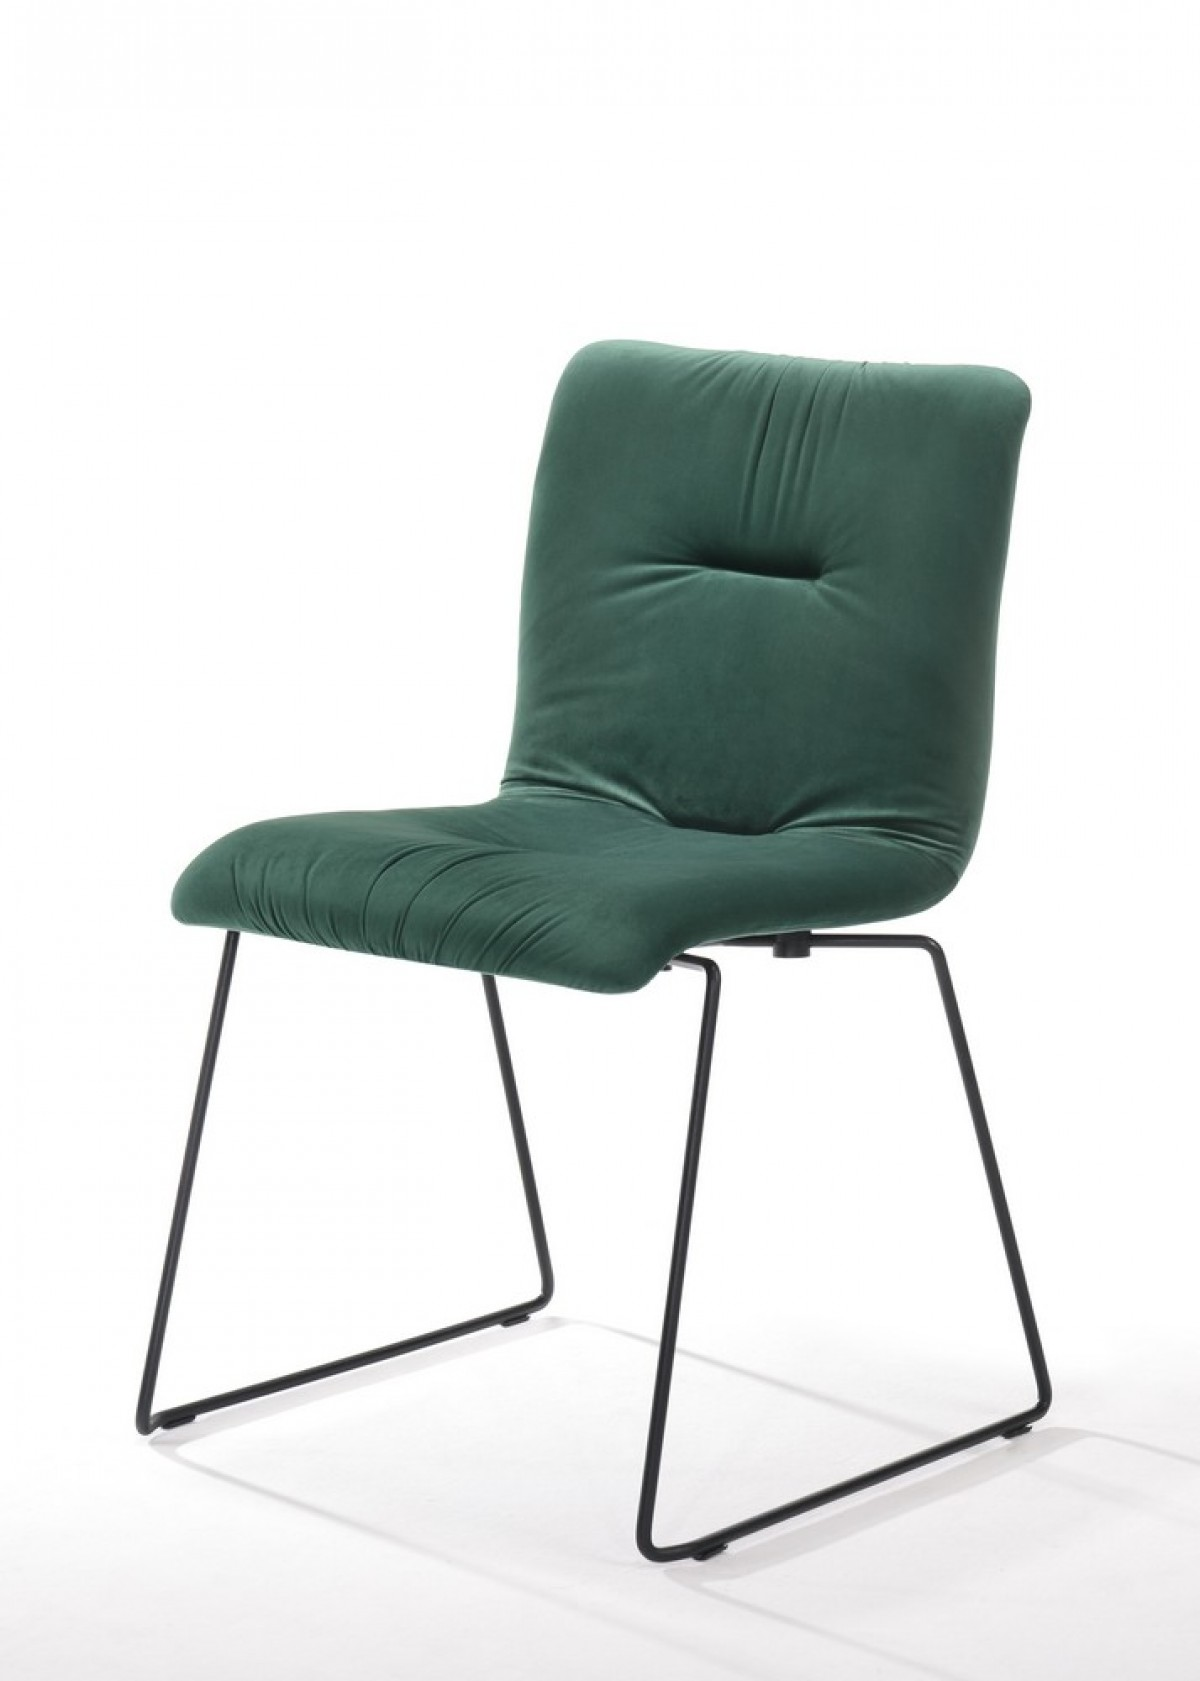 Swell Modrest Yannis Modern Green Fabric Dining Chair Set Of 2 Ibusinesslaw Wood Chair Design Ideas Ibusinesslaworg